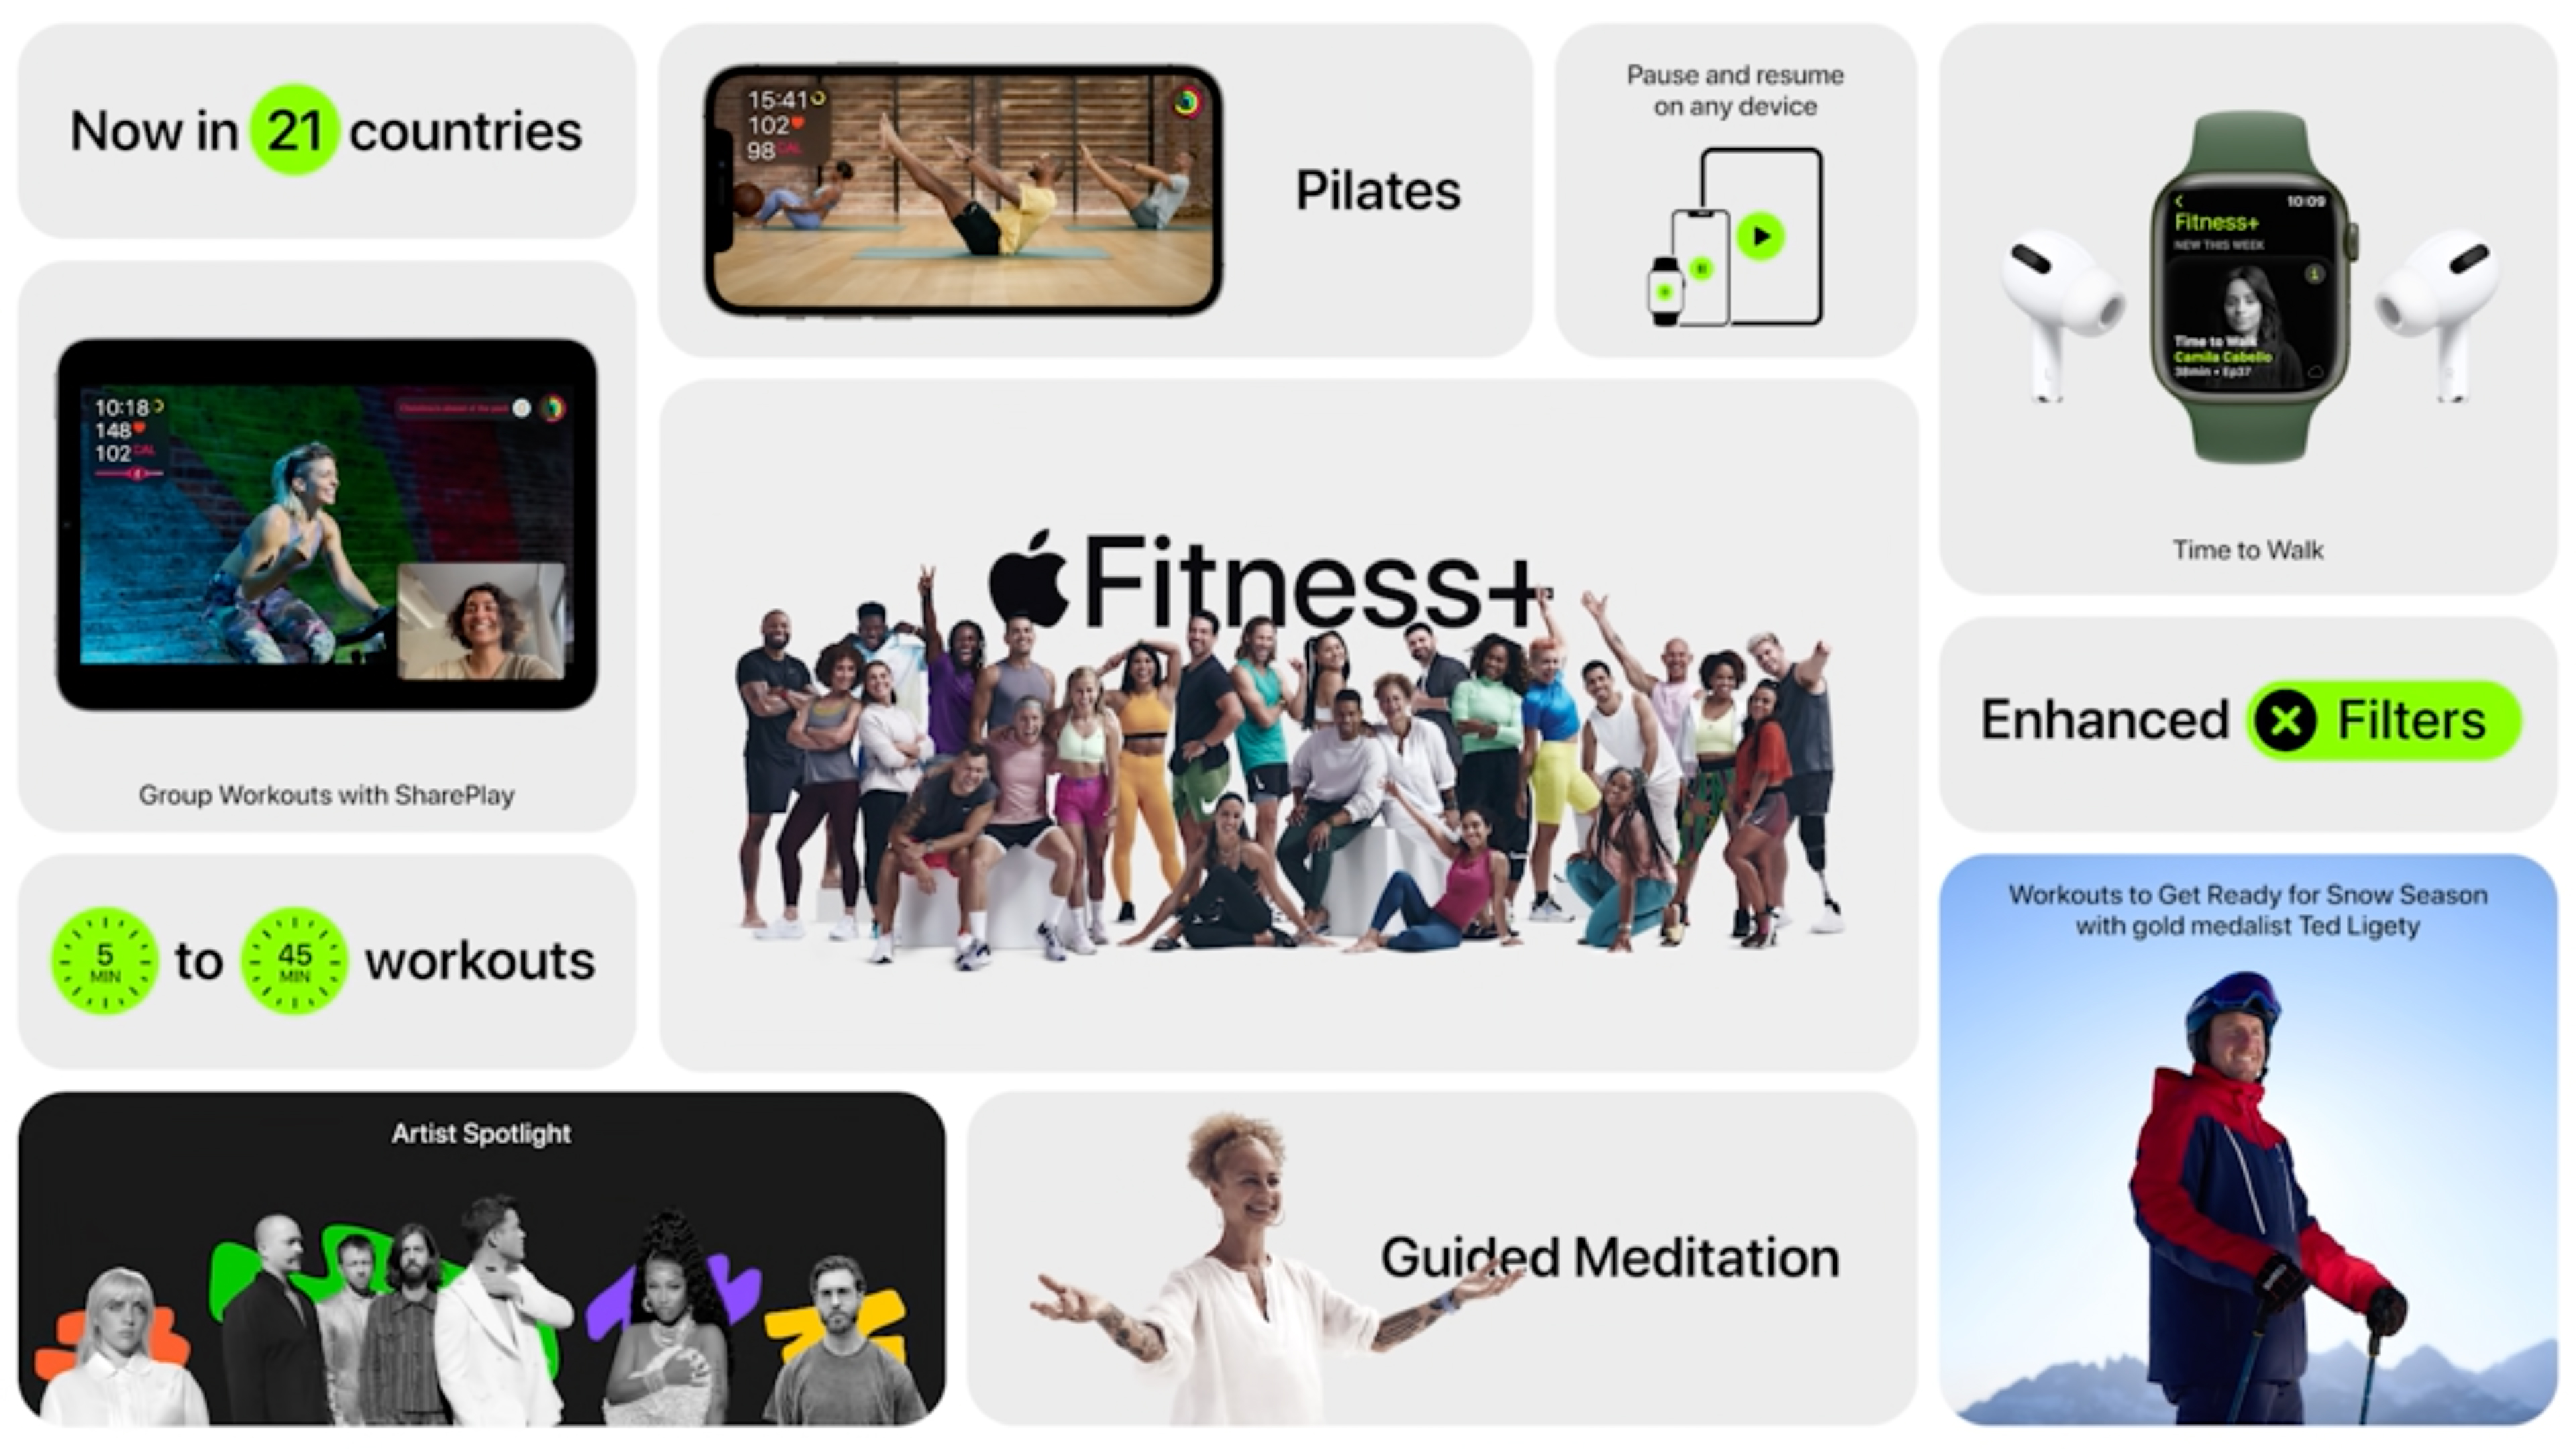 Apple Event Fitness Plus workouts